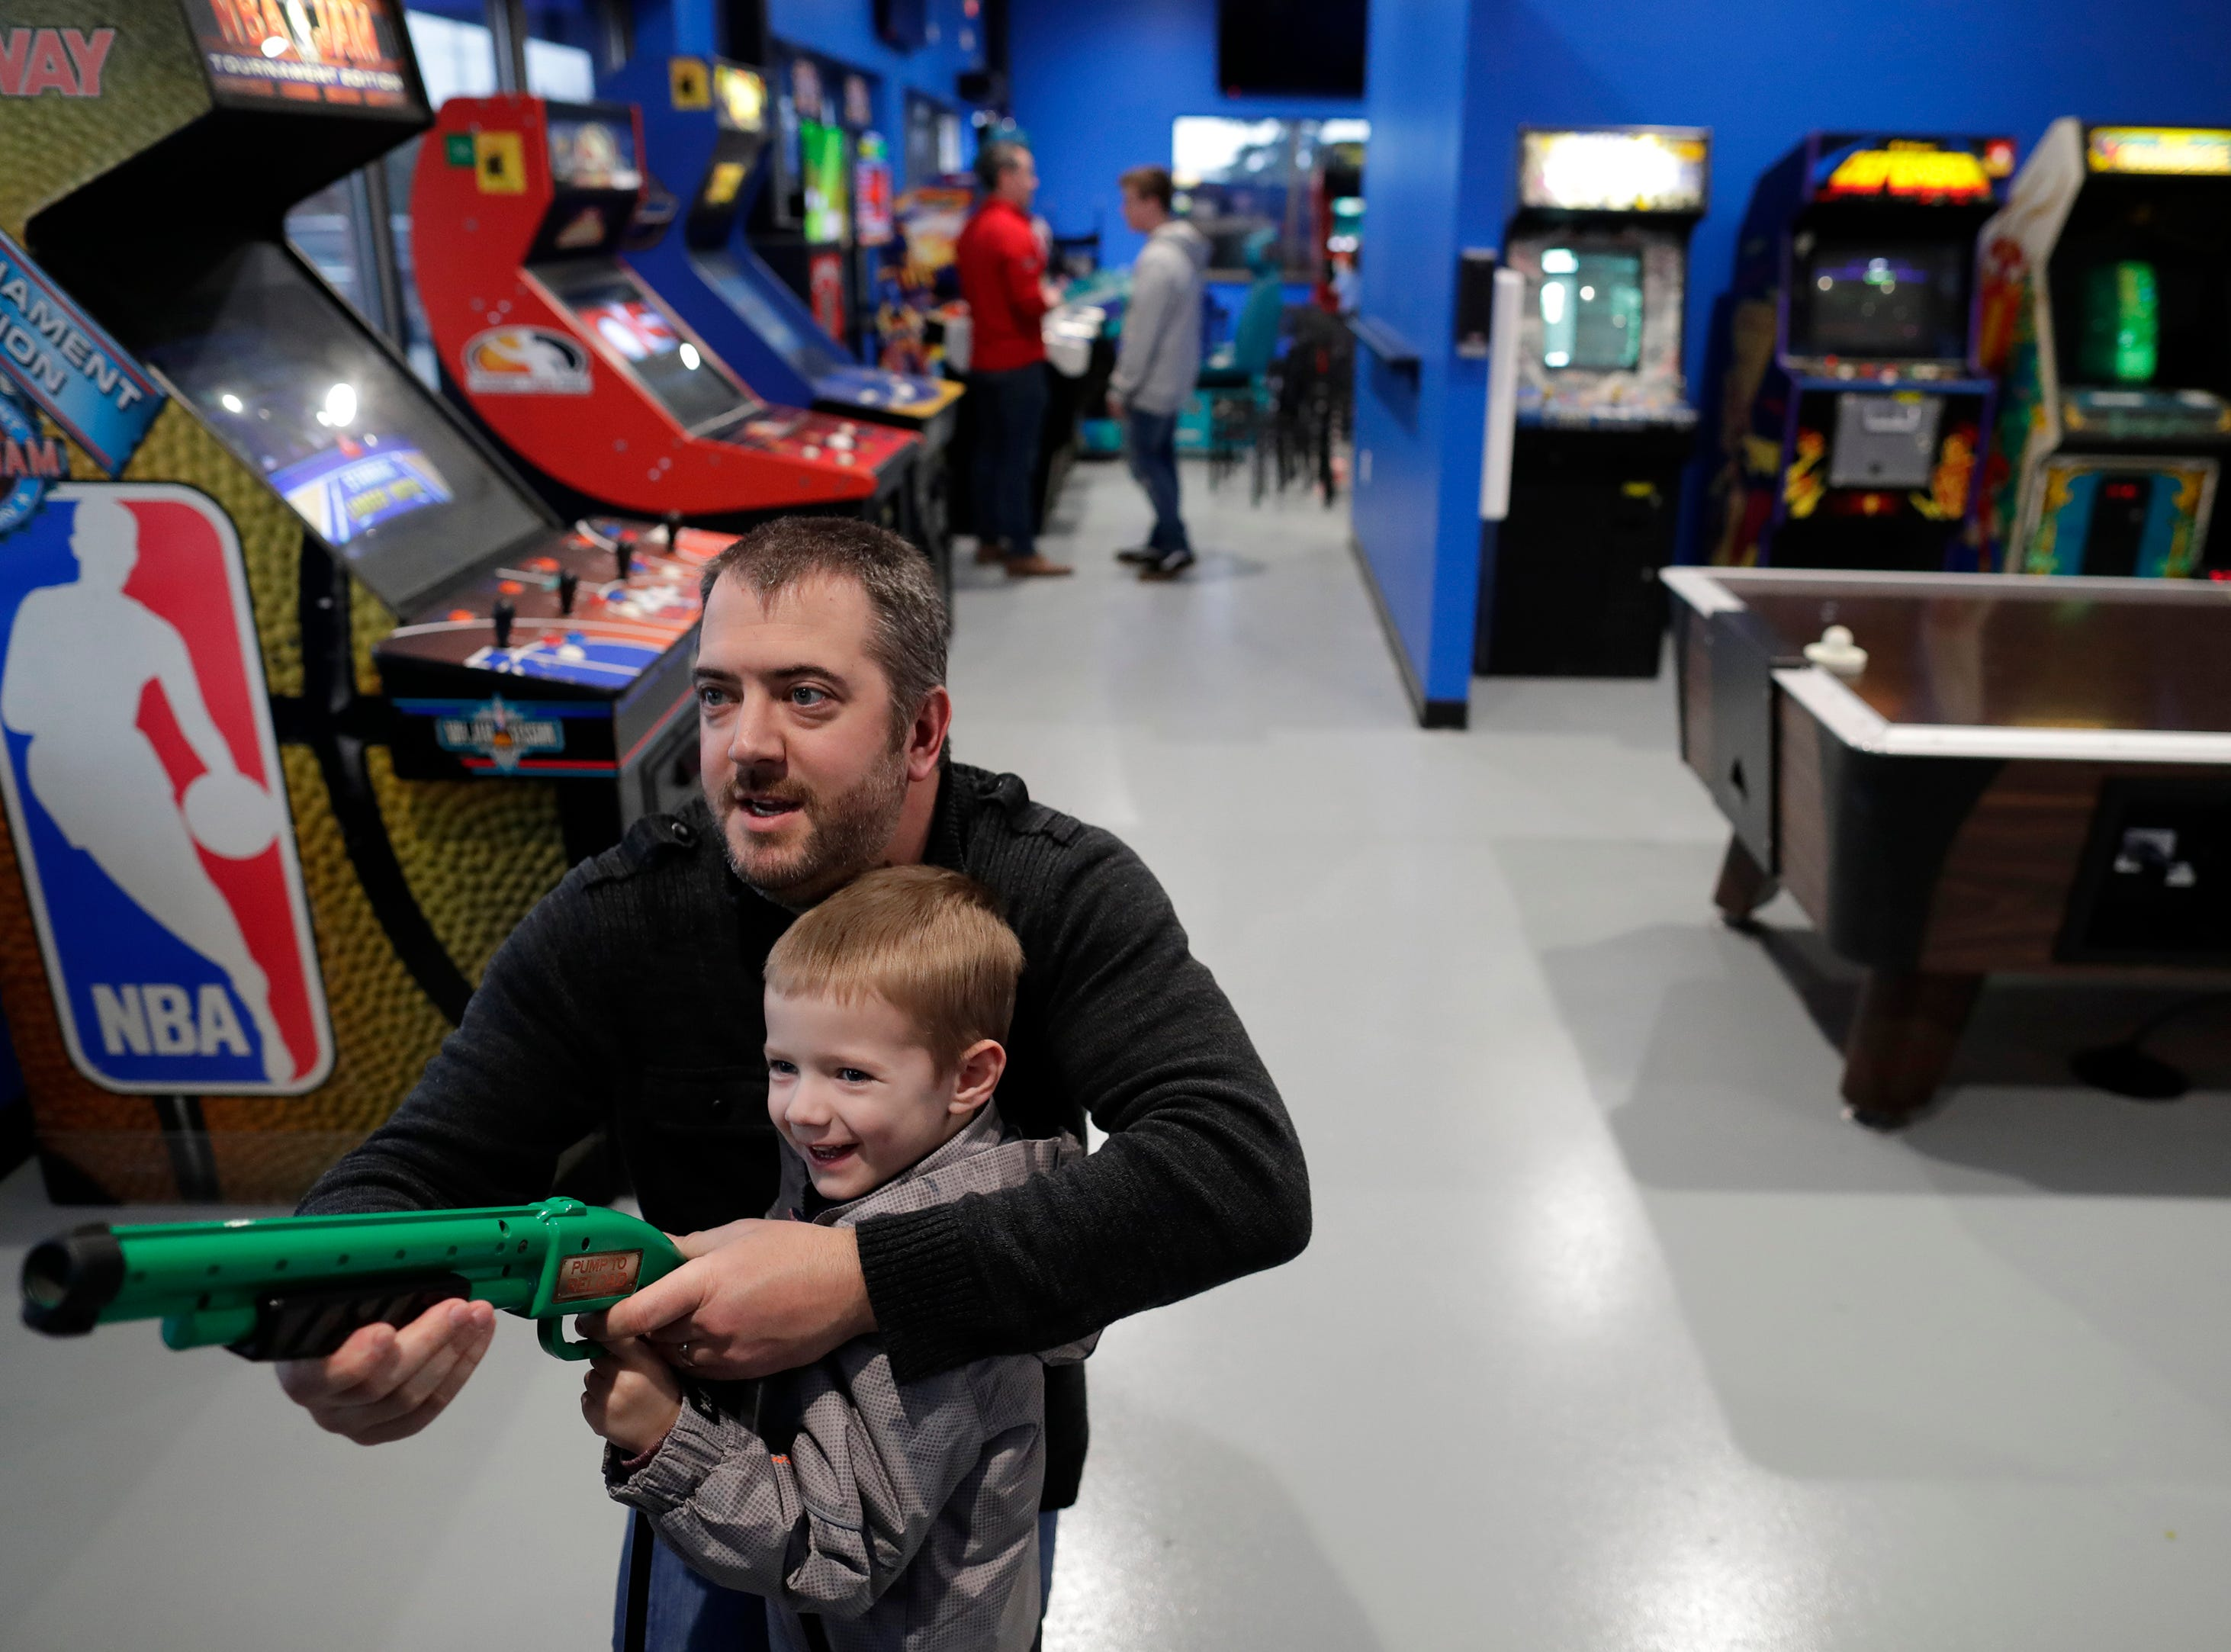 Aaron Mars and his son Caleb, 4, have fun playing the Big Buck World arcade game Thursday, March 14, 2019, at Pixel's Arcade & Sports Bar in Oshkosh, Wis. The two are from Oshkosh.Dan Powers/USA TODAY NETWORK-Wisconsin